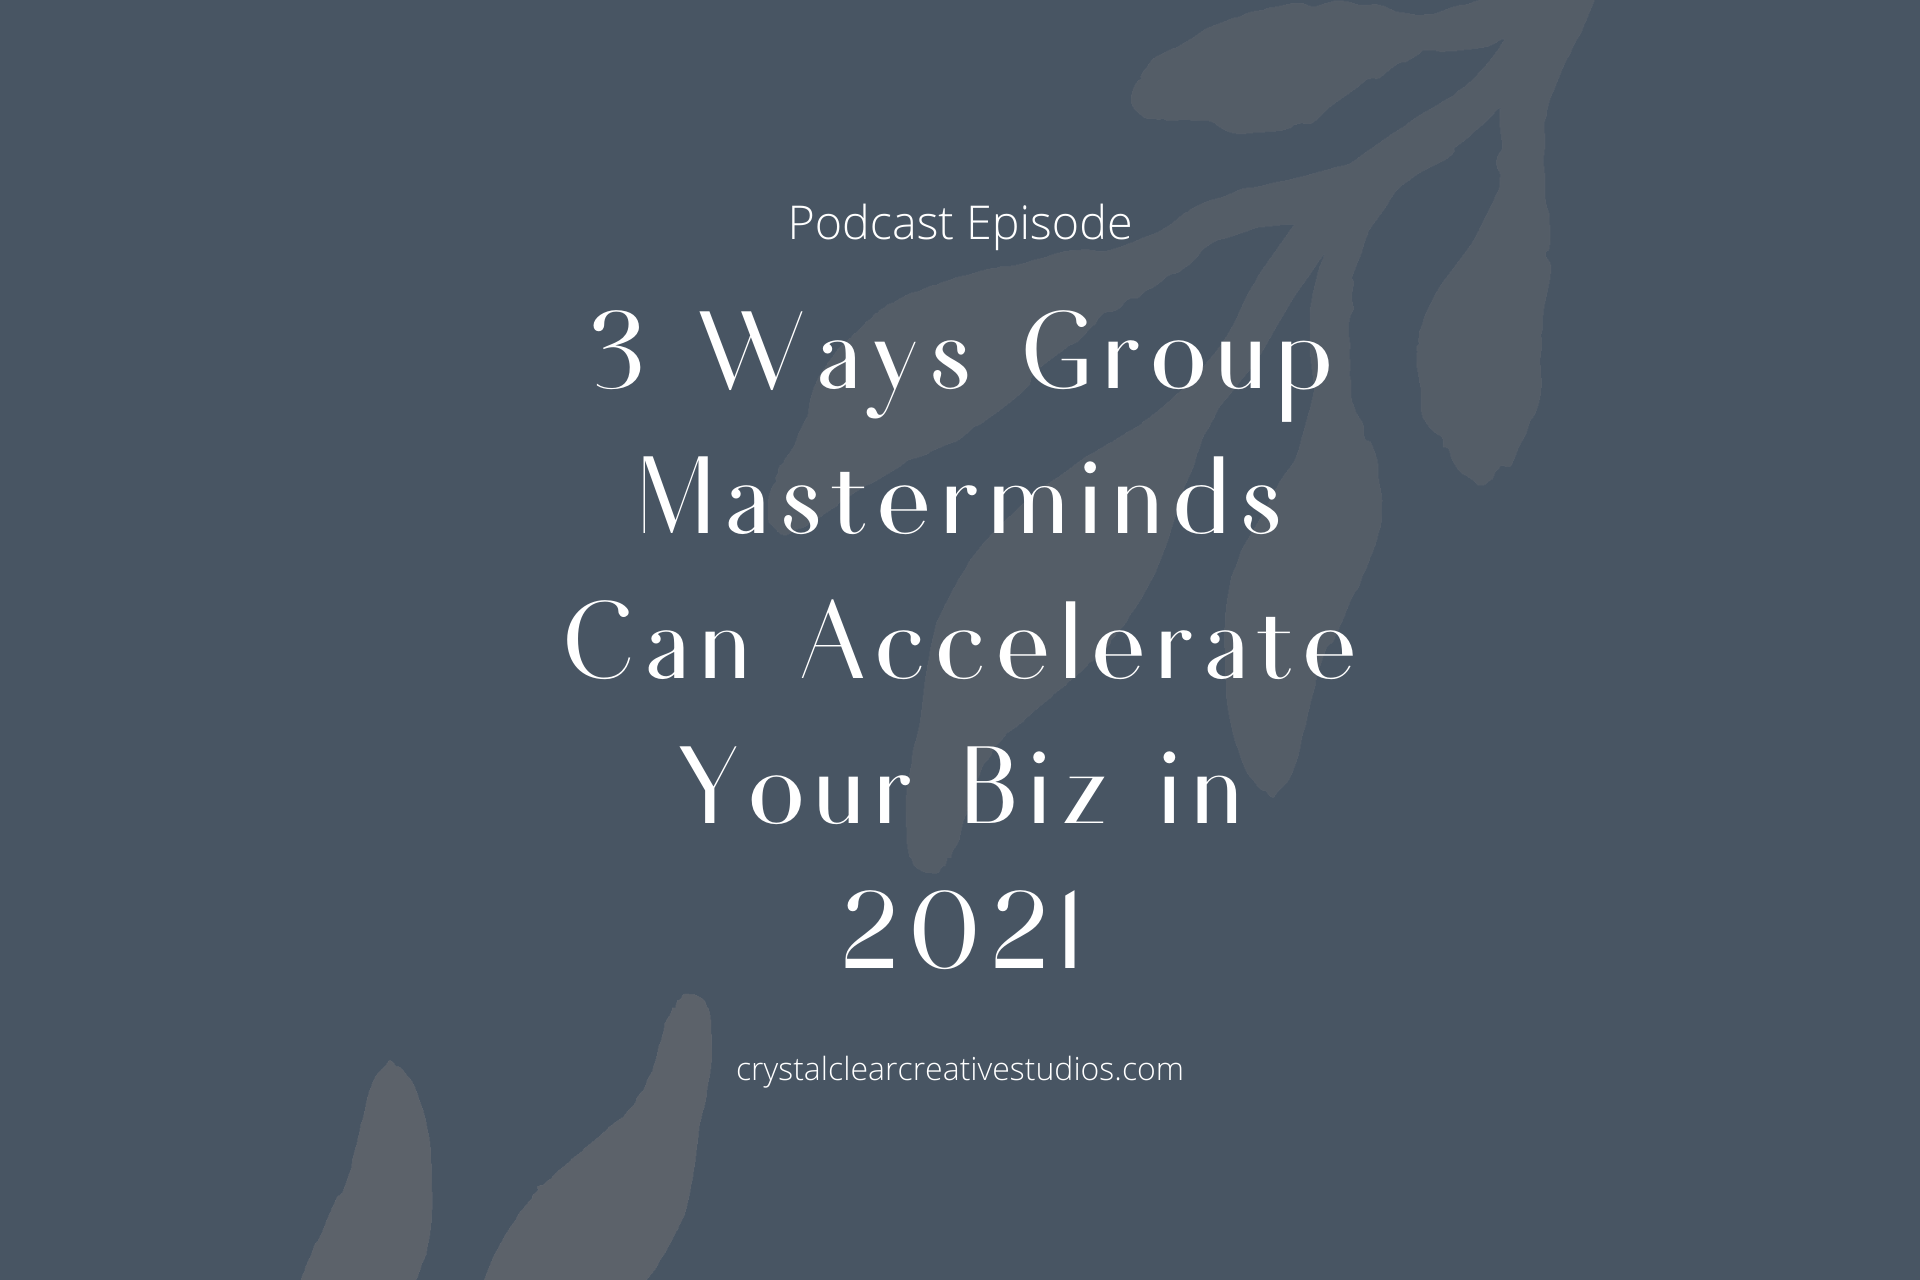 3 Ways A Group Mastermind Can Accelerate Your Biz 2021